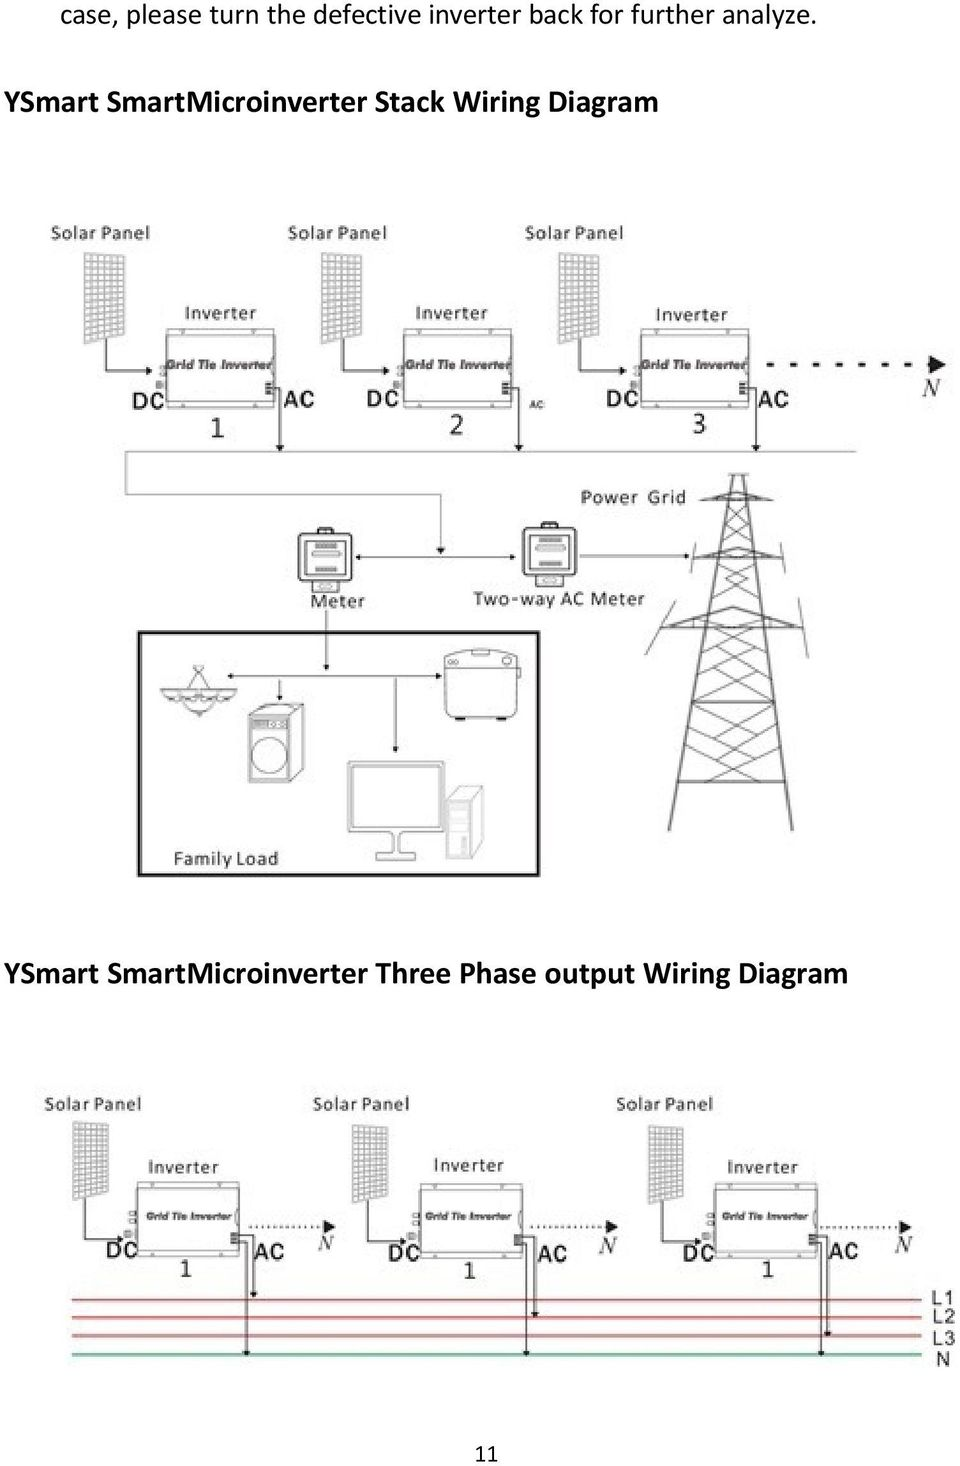 YSmart SmartMicroinverter Stack Wiring